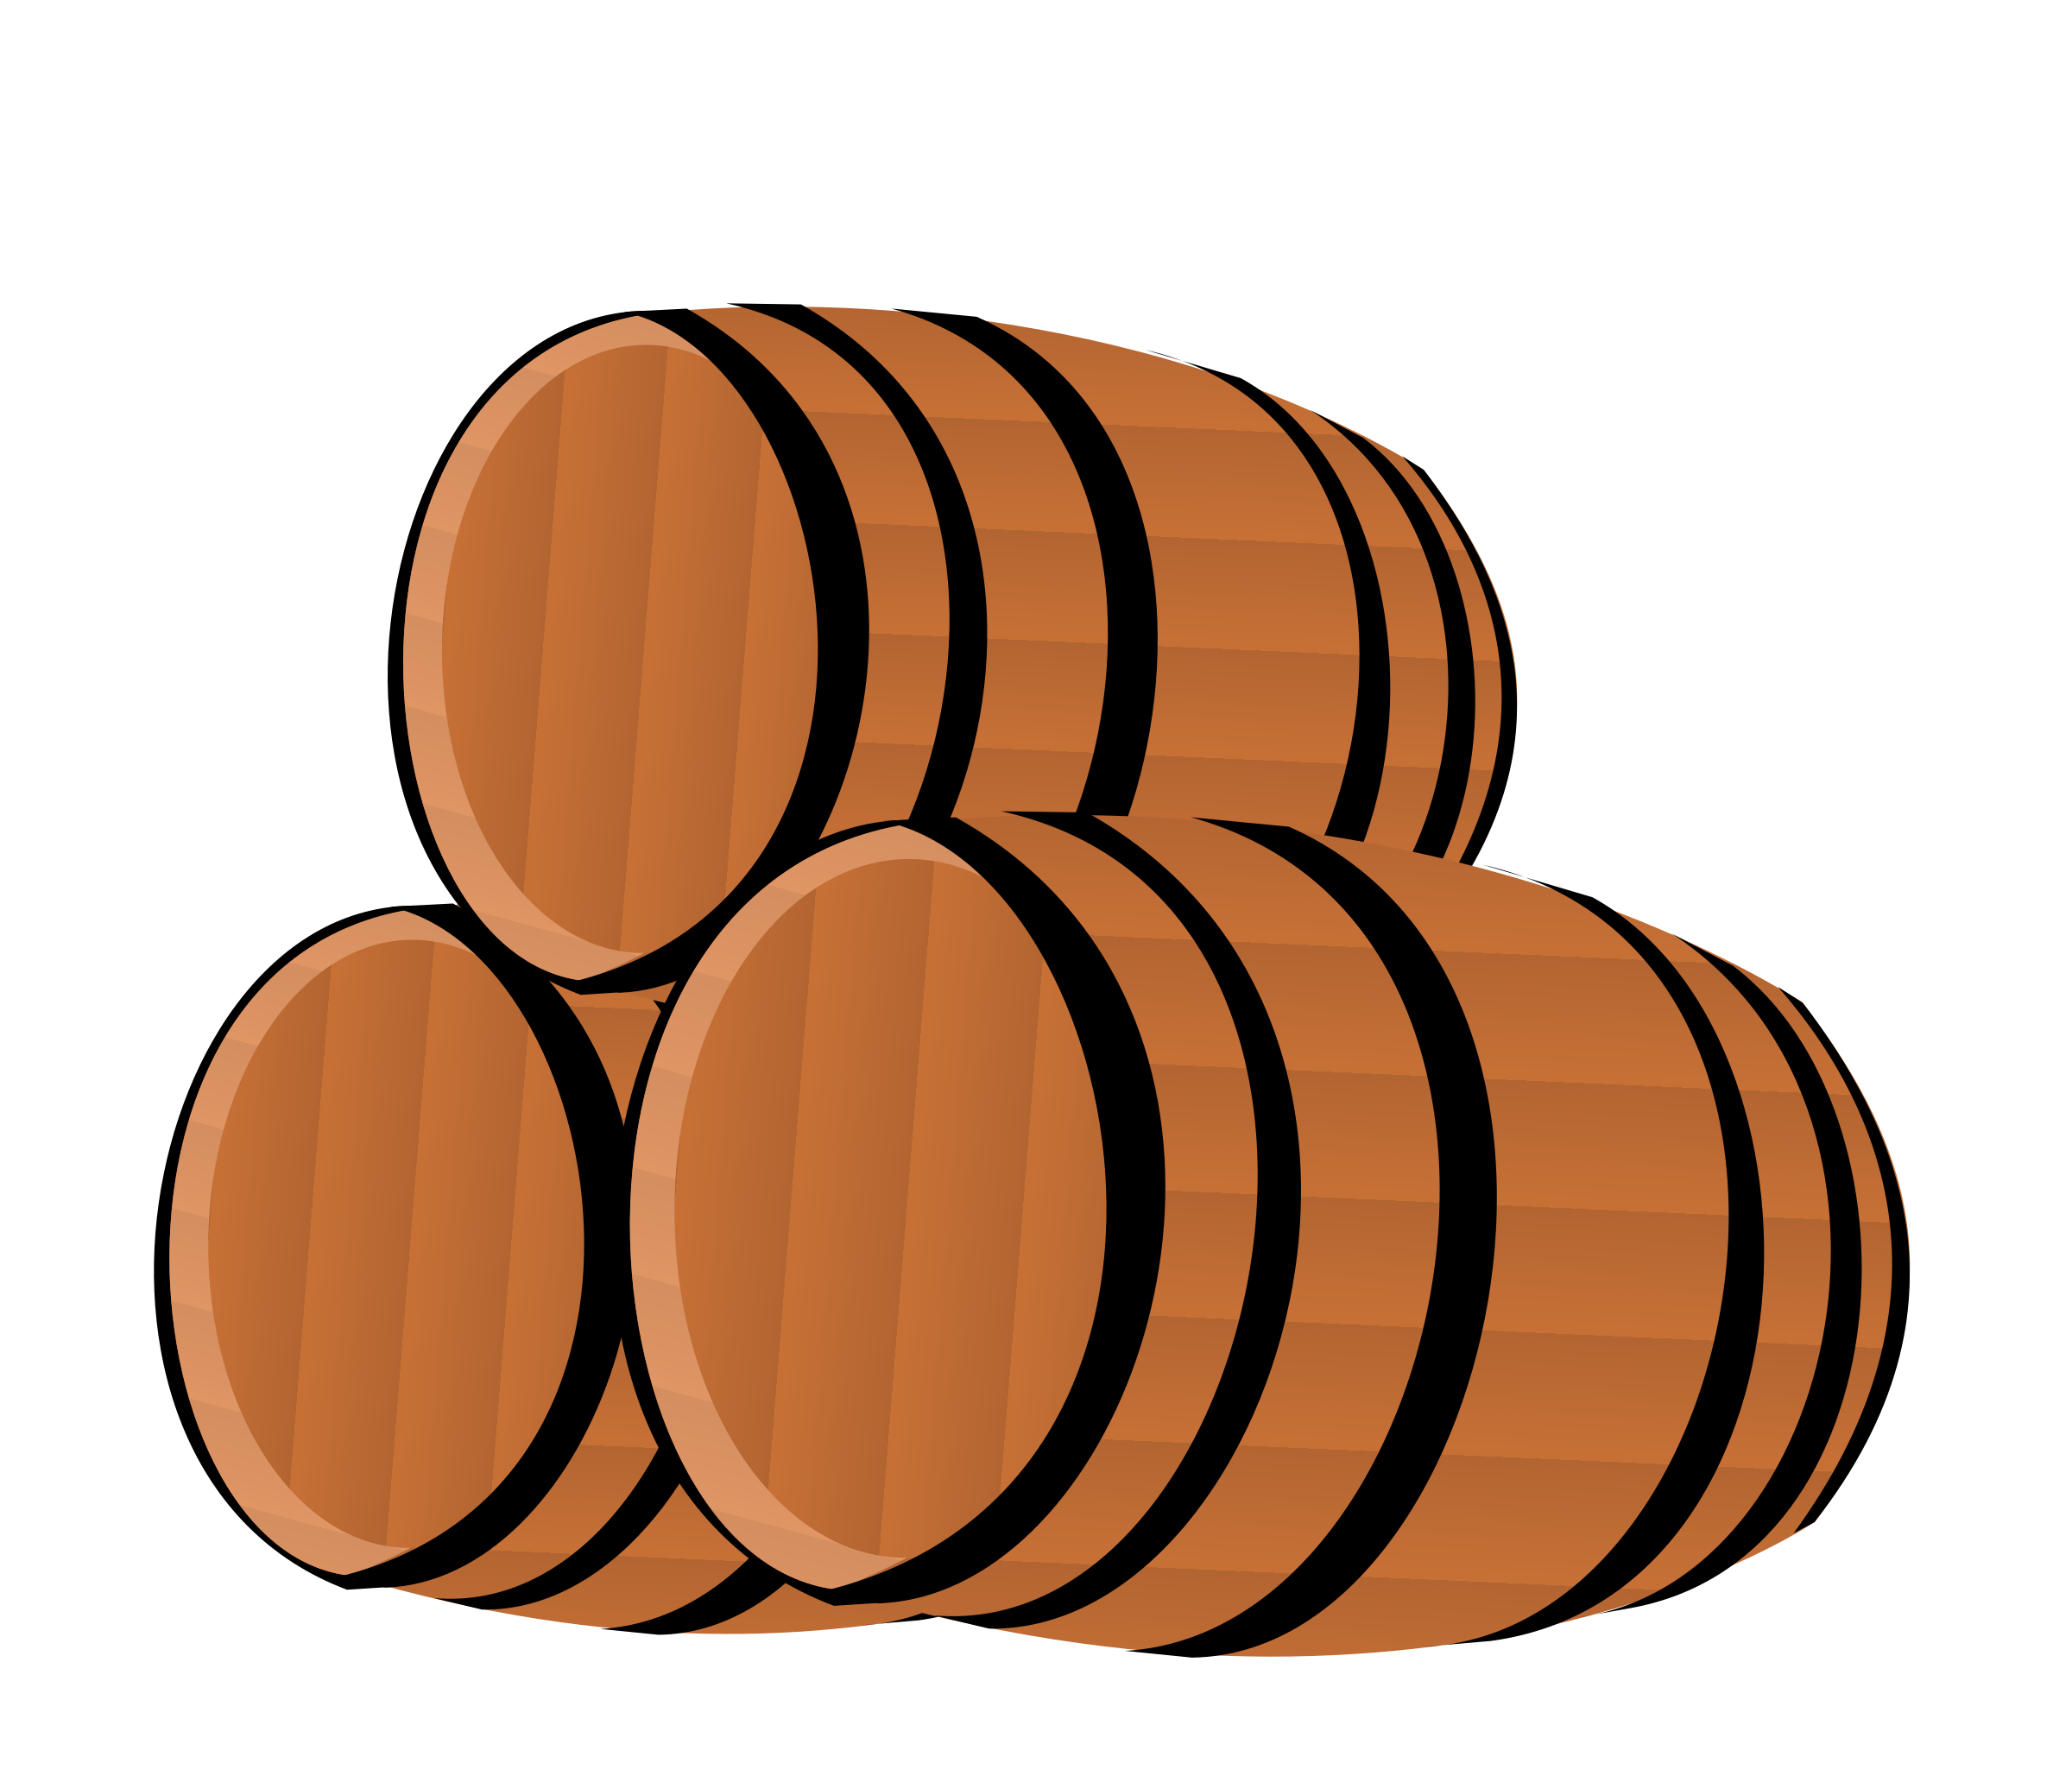 Pirate clipart barrel #15